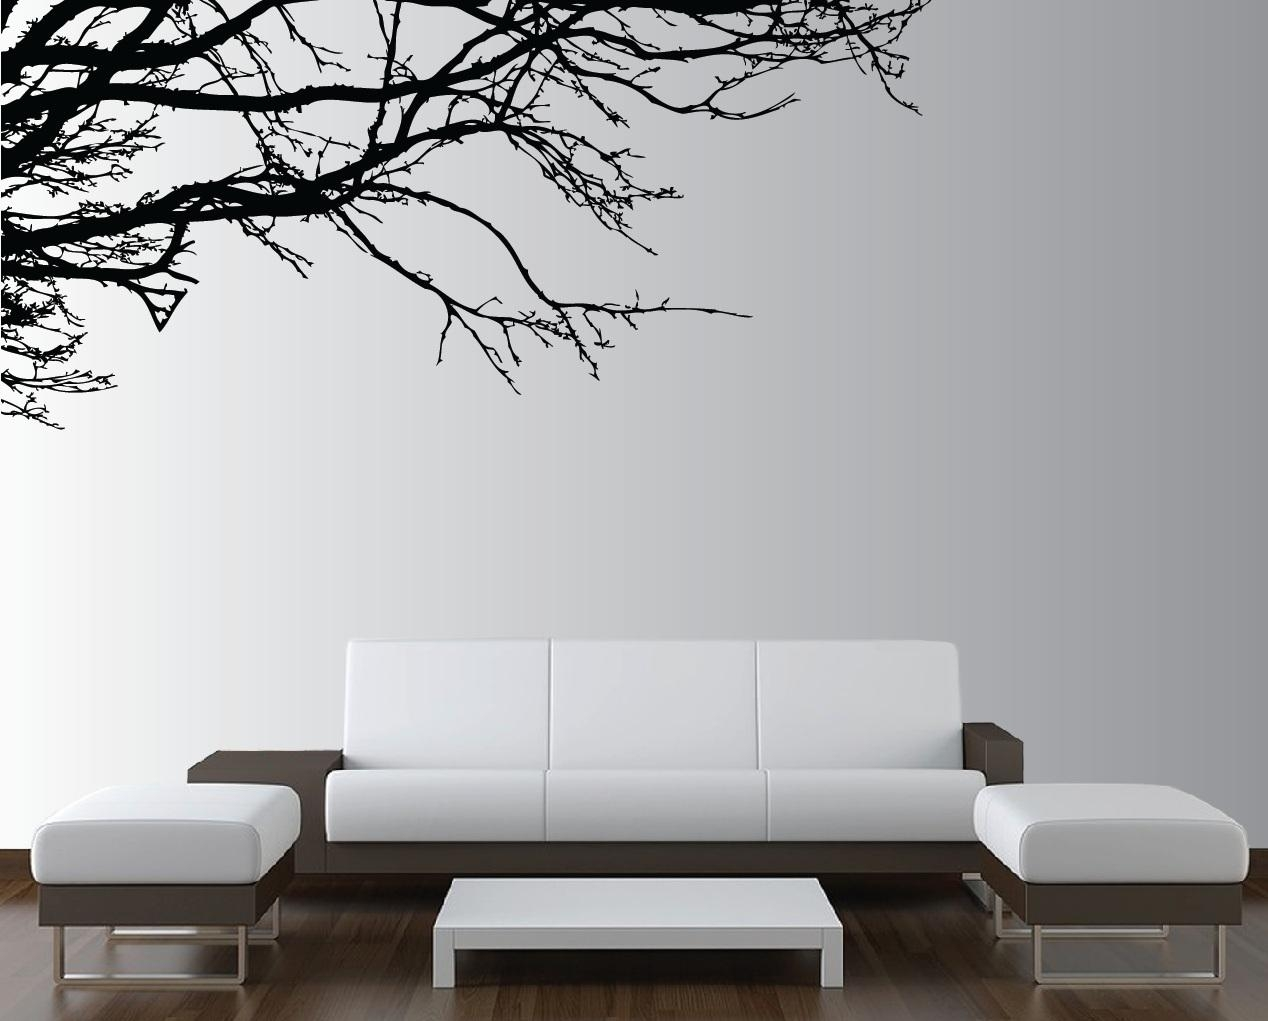 Large Tree Wall Decals Large Wall Tree Nursery Decal Oak Branches Regarding Oak Tree Wall Art (View 20 of 20)